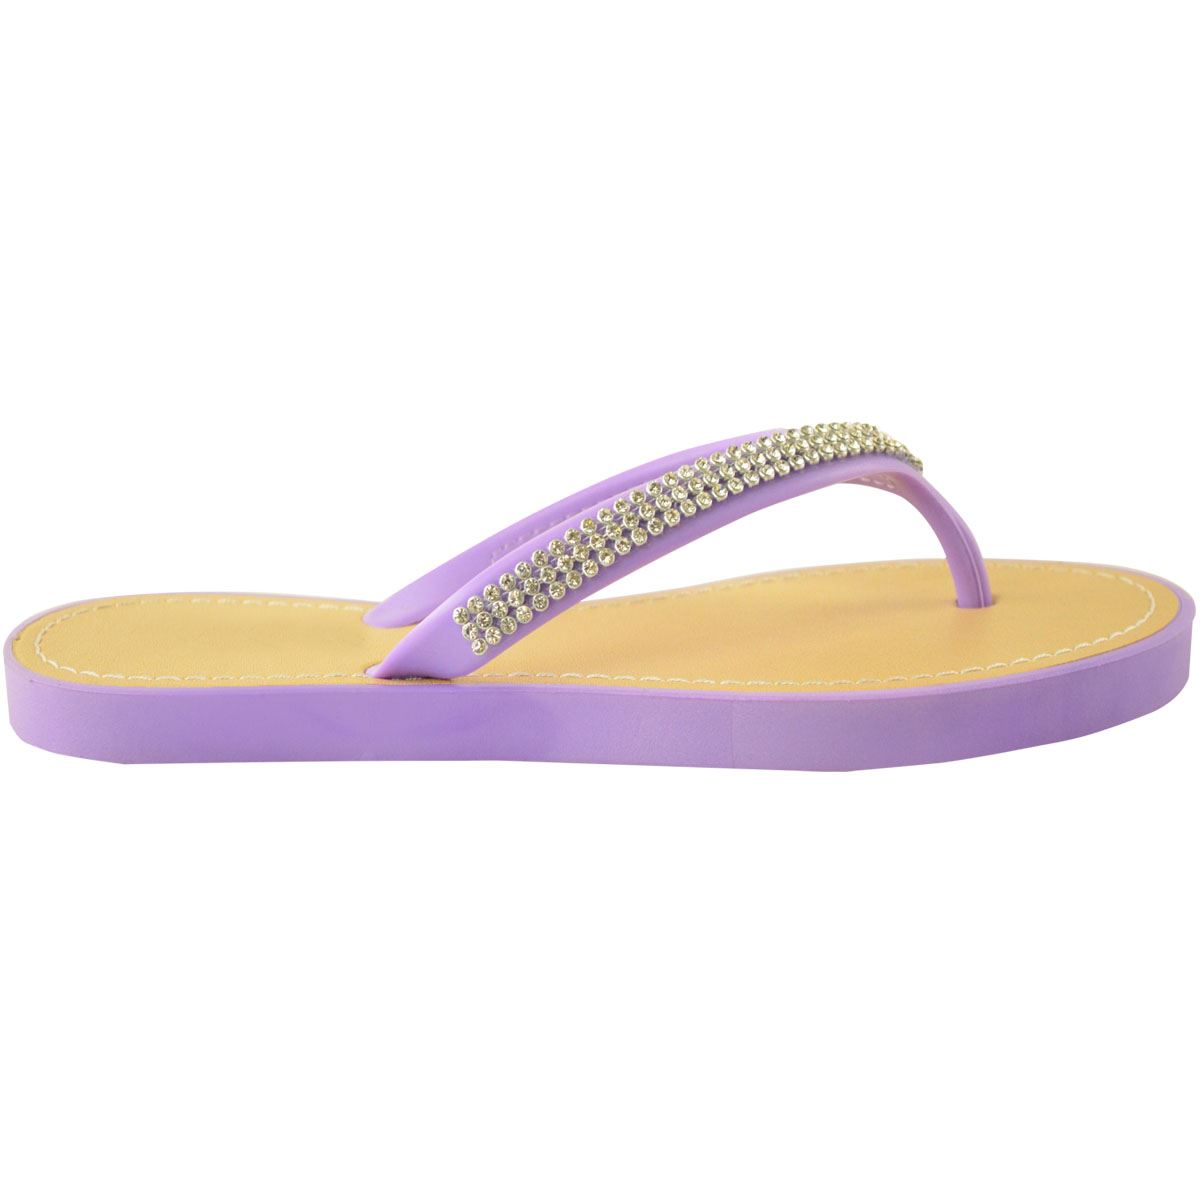 NEW-JELLY-SANDALS-WOMENS-LADIES-DIAMANTE-SUMMER-HOLIDAY-COMFORTS-FLIP-FLOPS-SIZE thumbnail 62